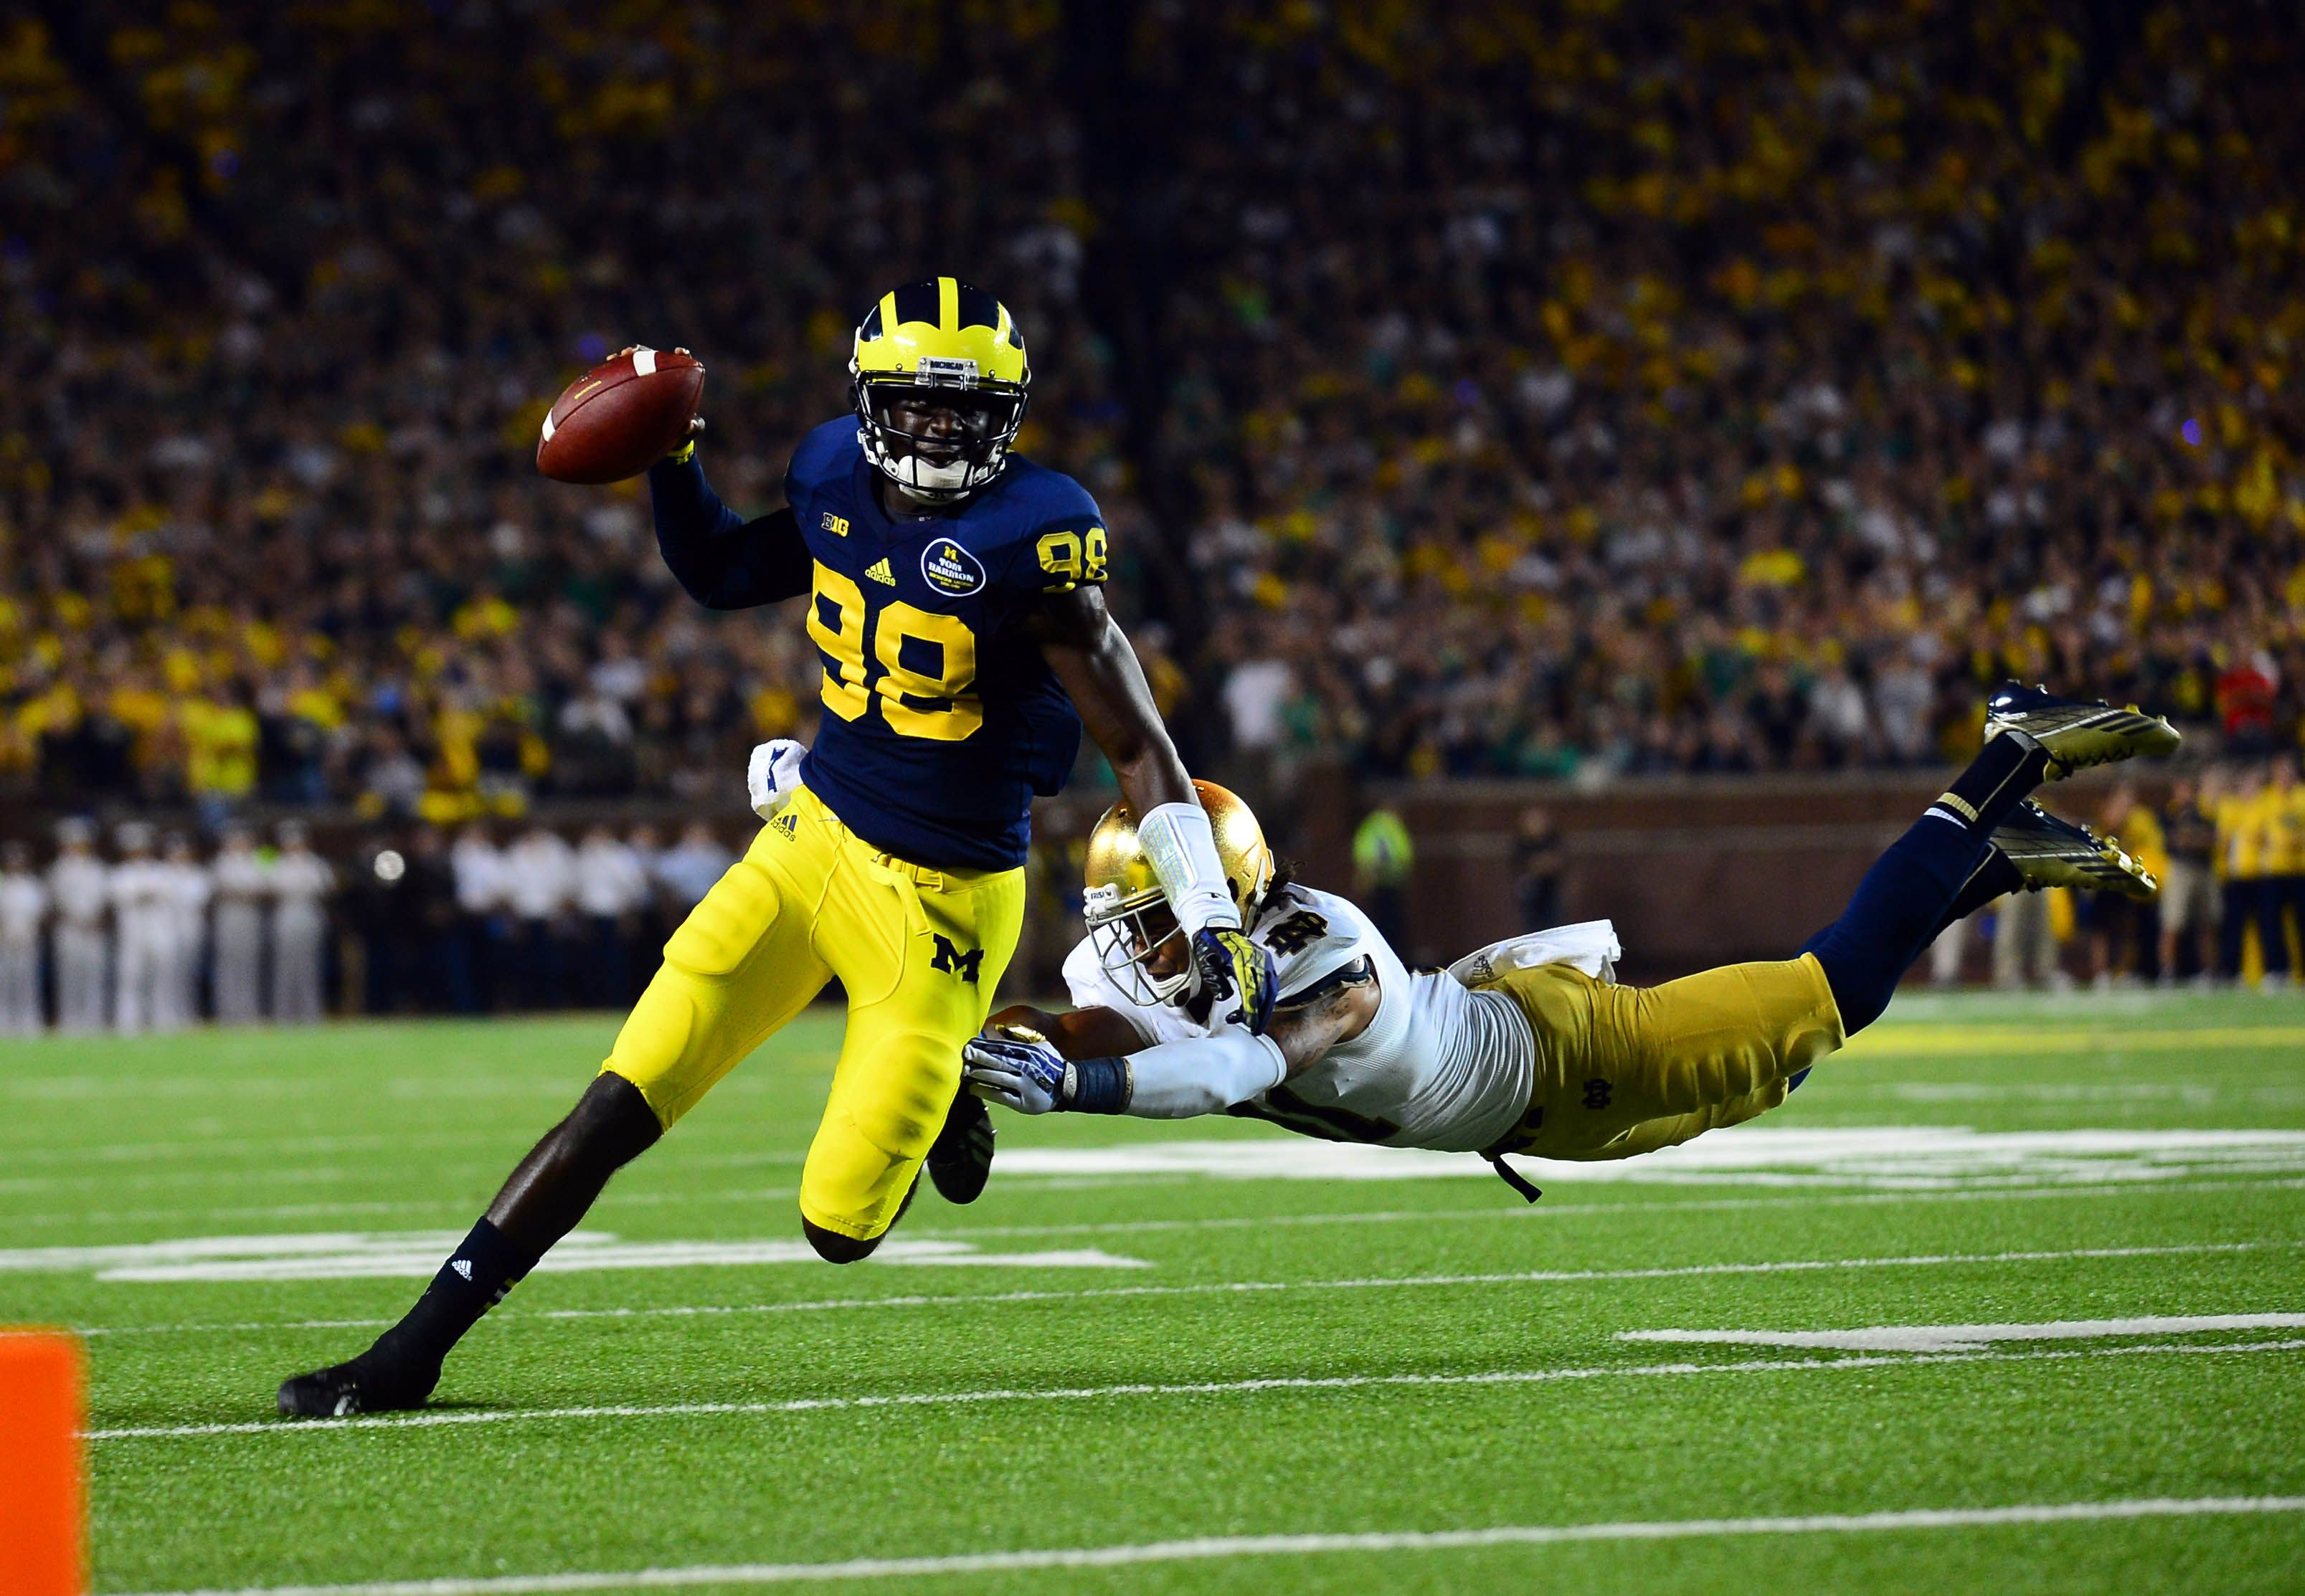 My favorite college football team is michigan i will